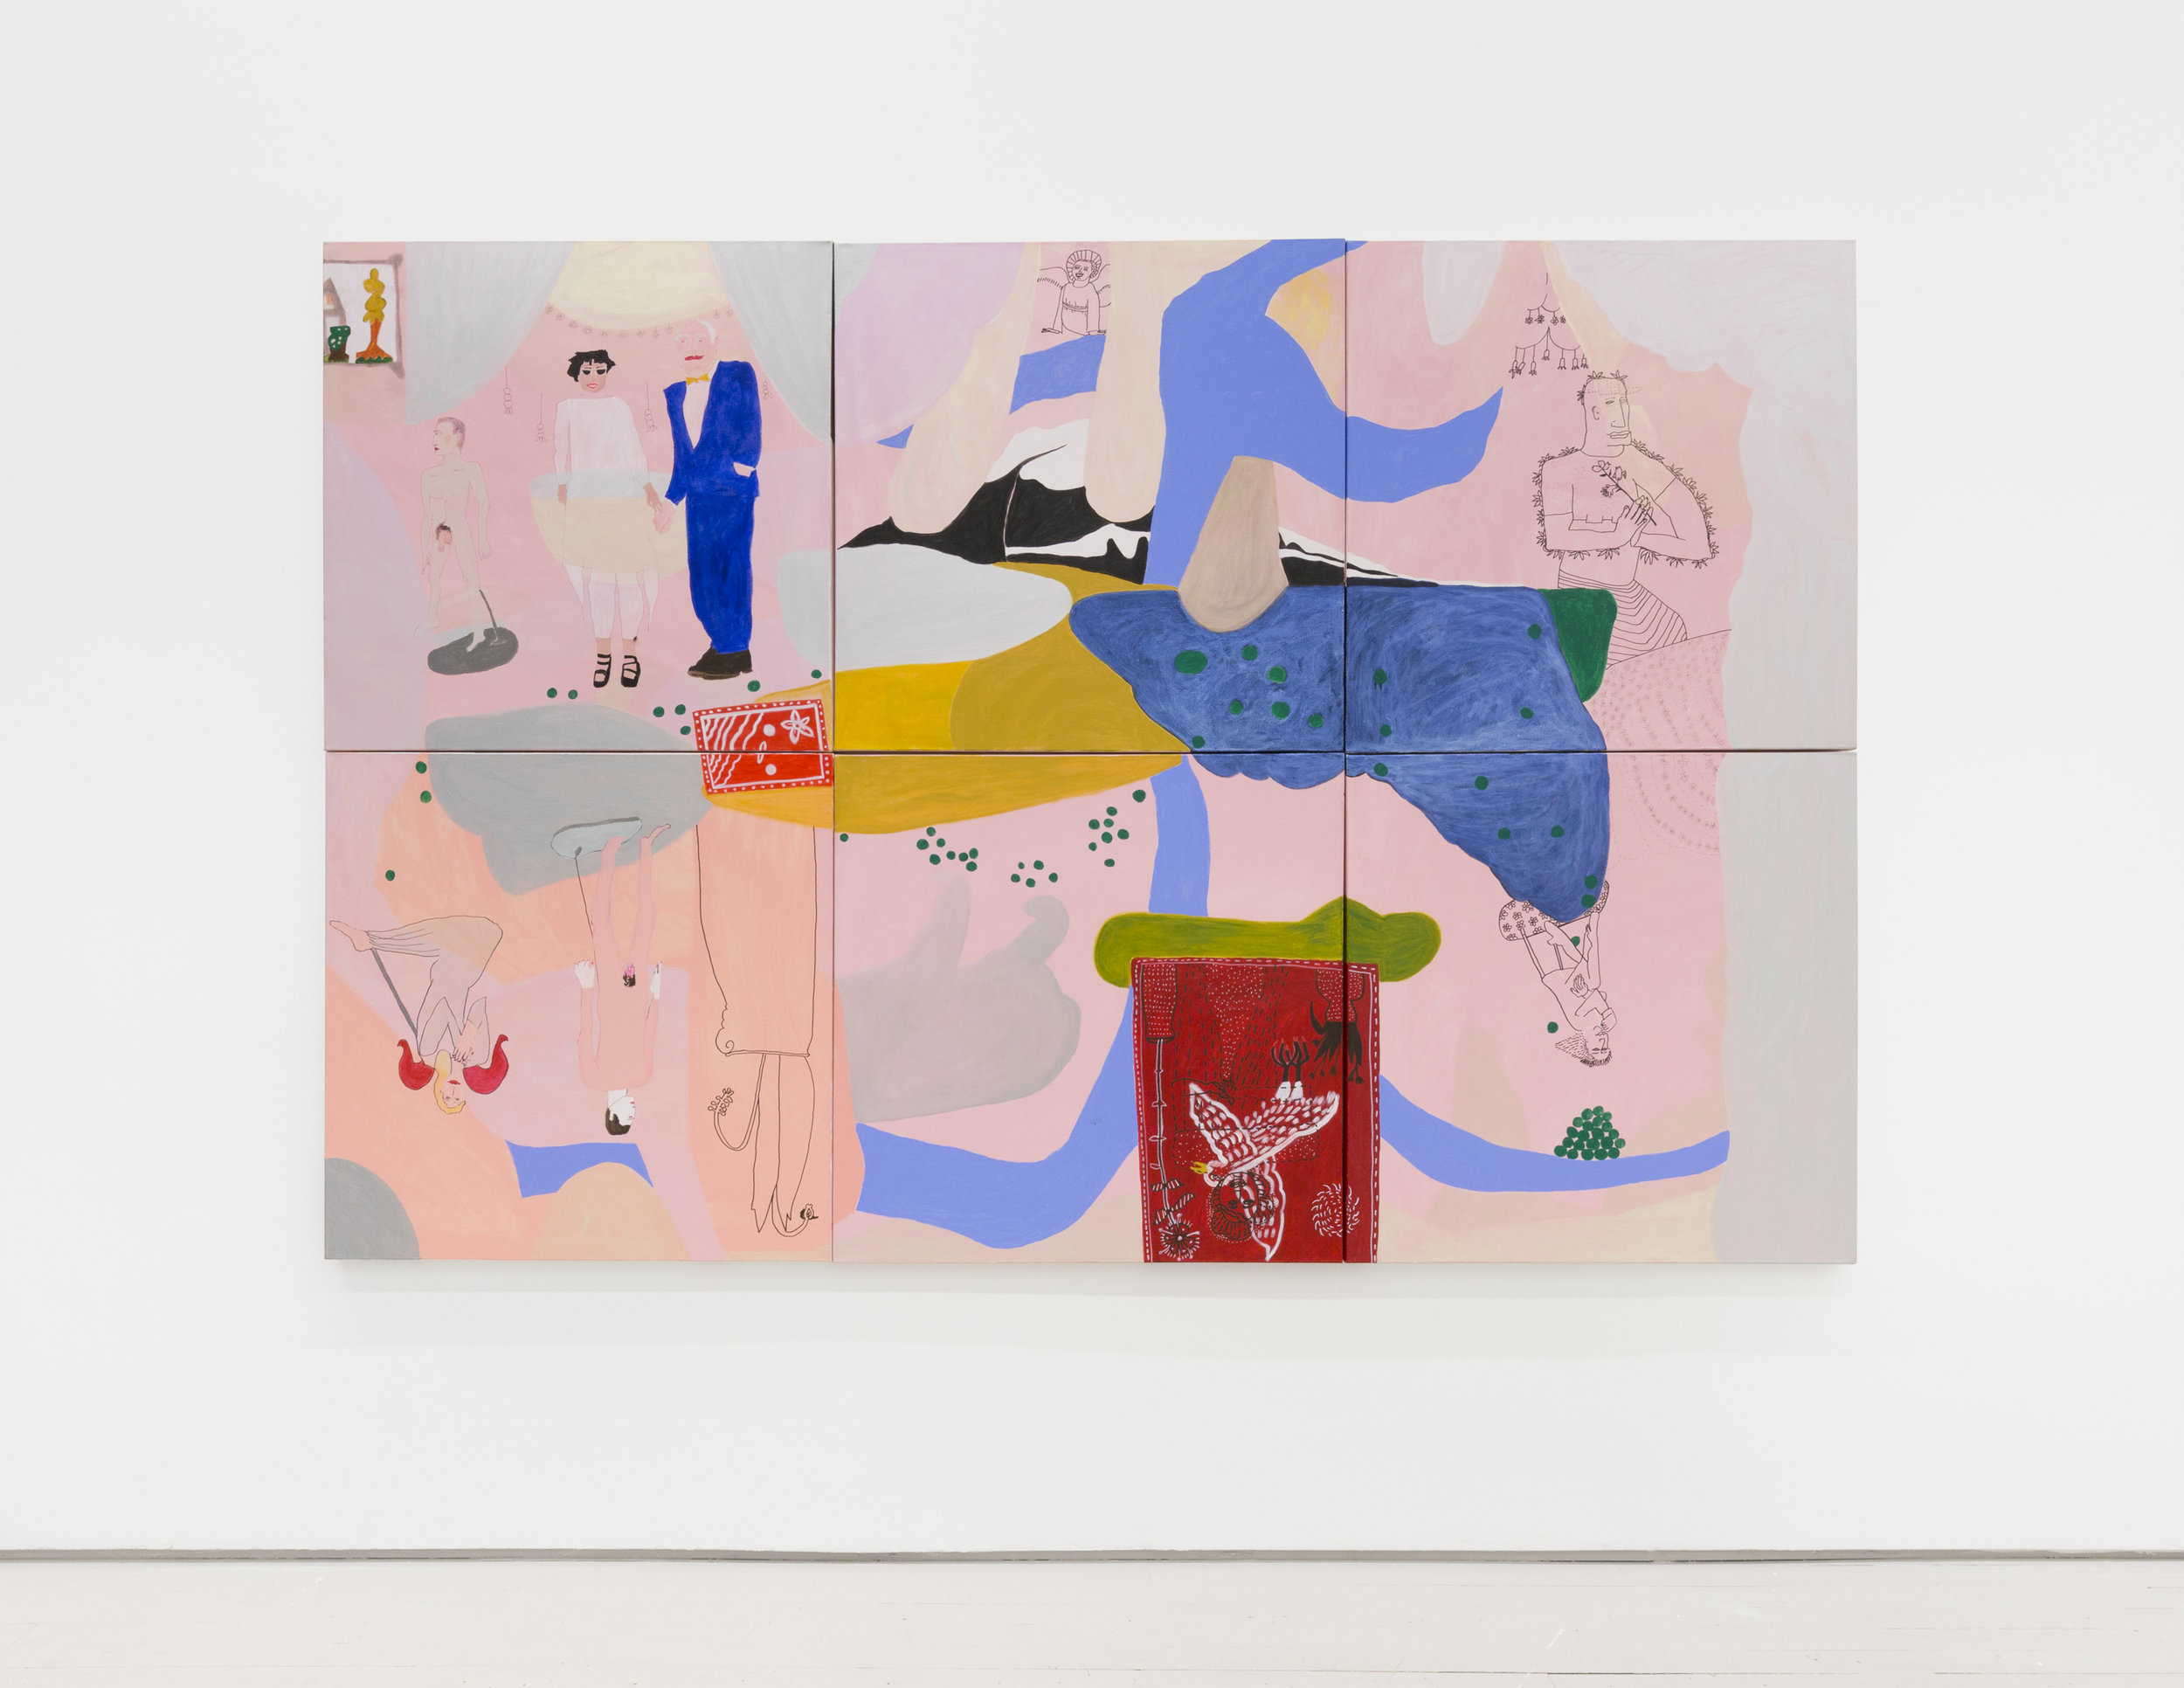 Susan Wick The Art Collectors (Large 6 part panel), 2014 Acrylic on canvas 36 x 36 x x6 in (91.4 x 91.4 x 15.2 cm)